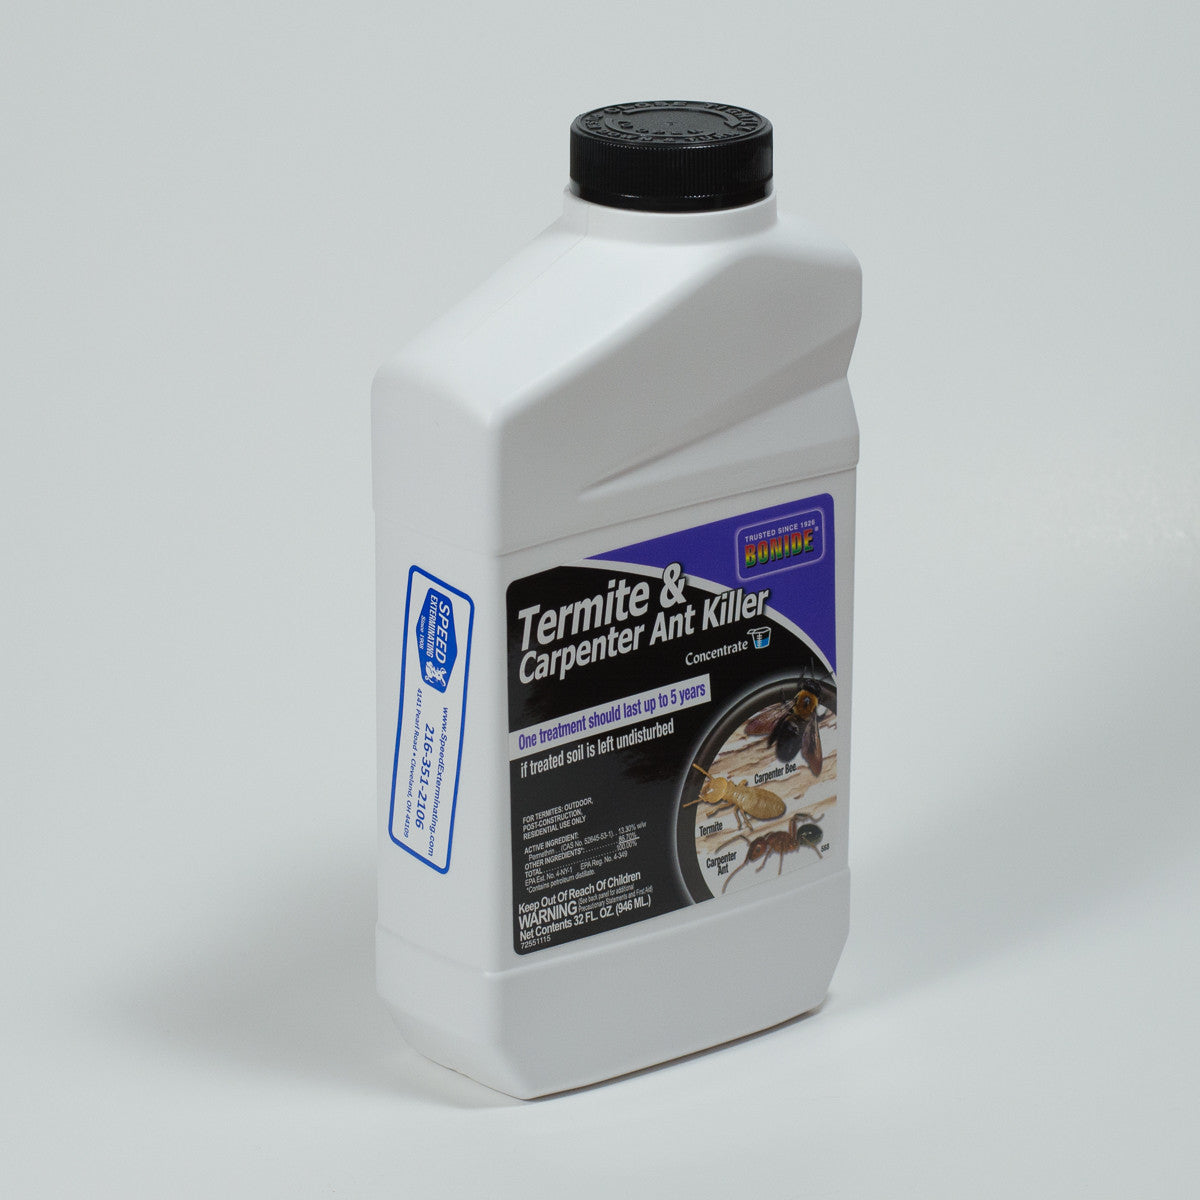 Bonide Termite & Carpenter Ant Killer